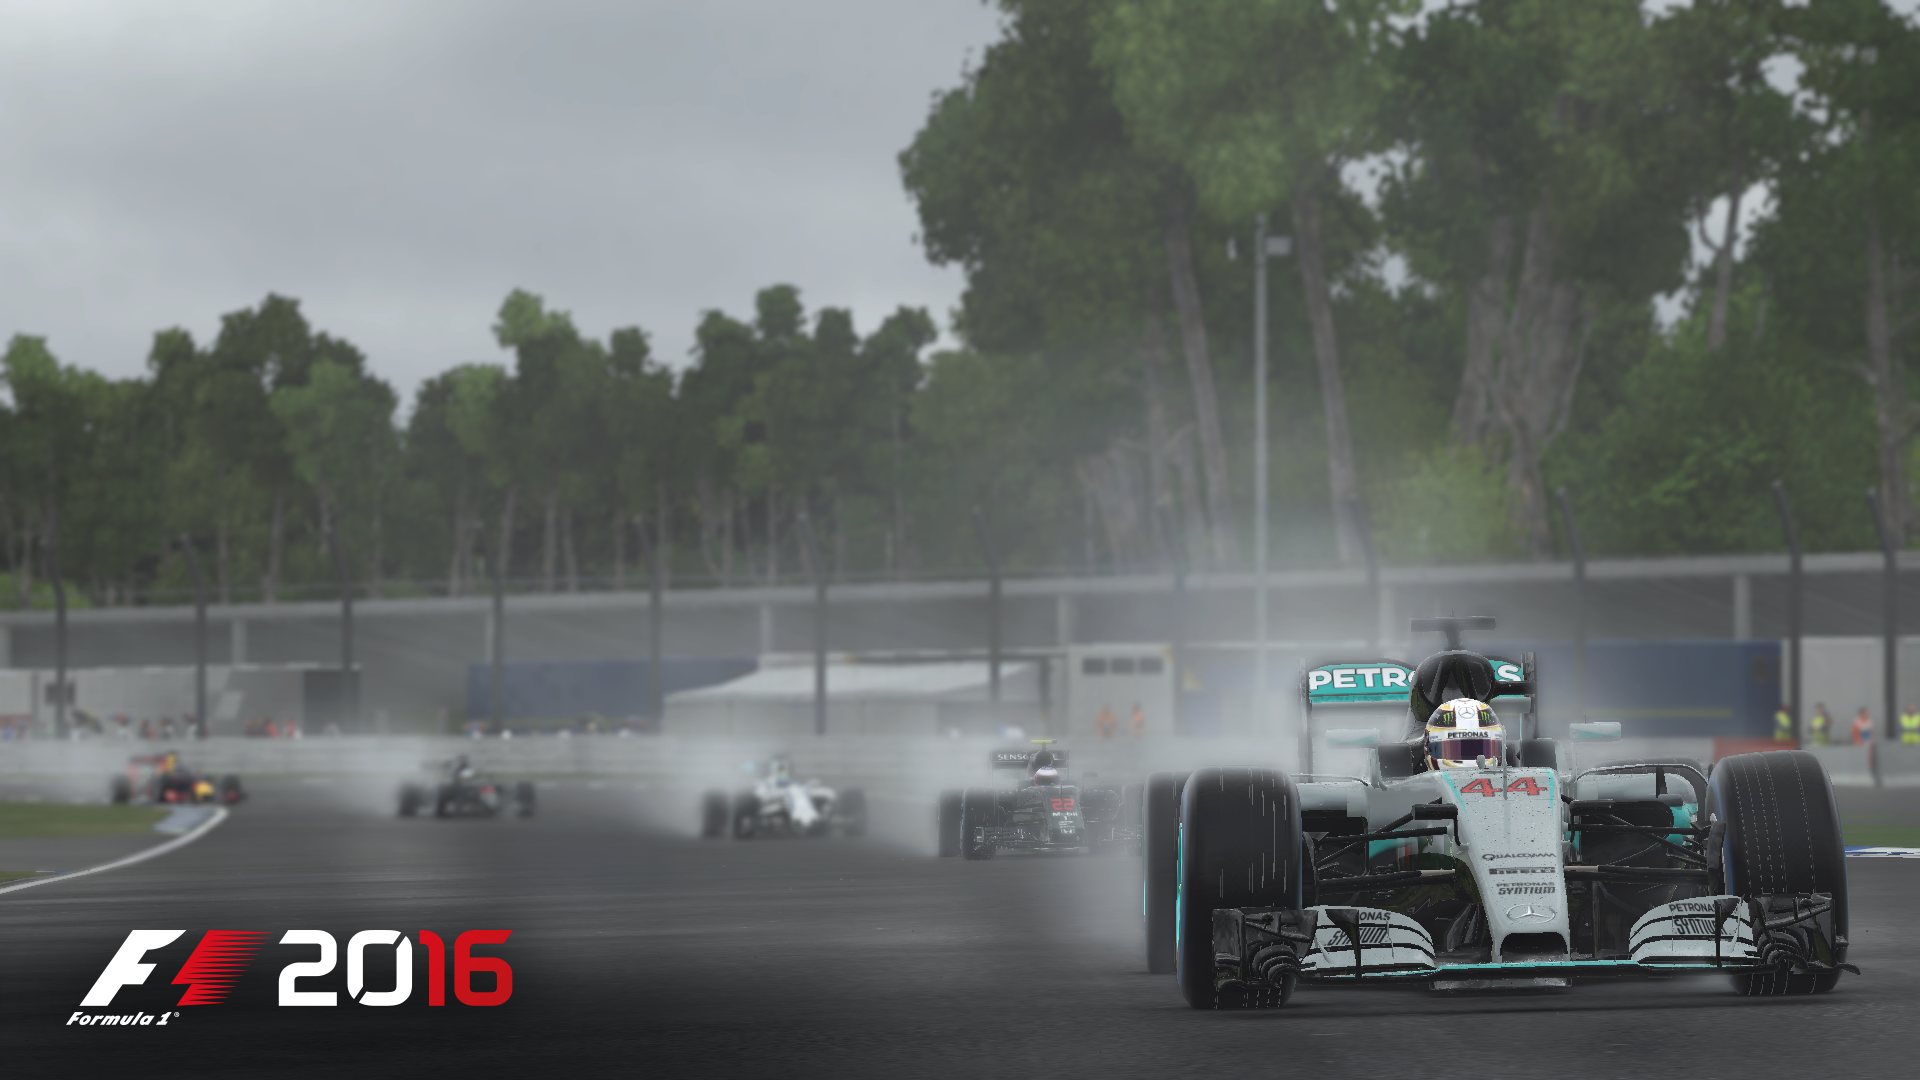 f1 2016 germany